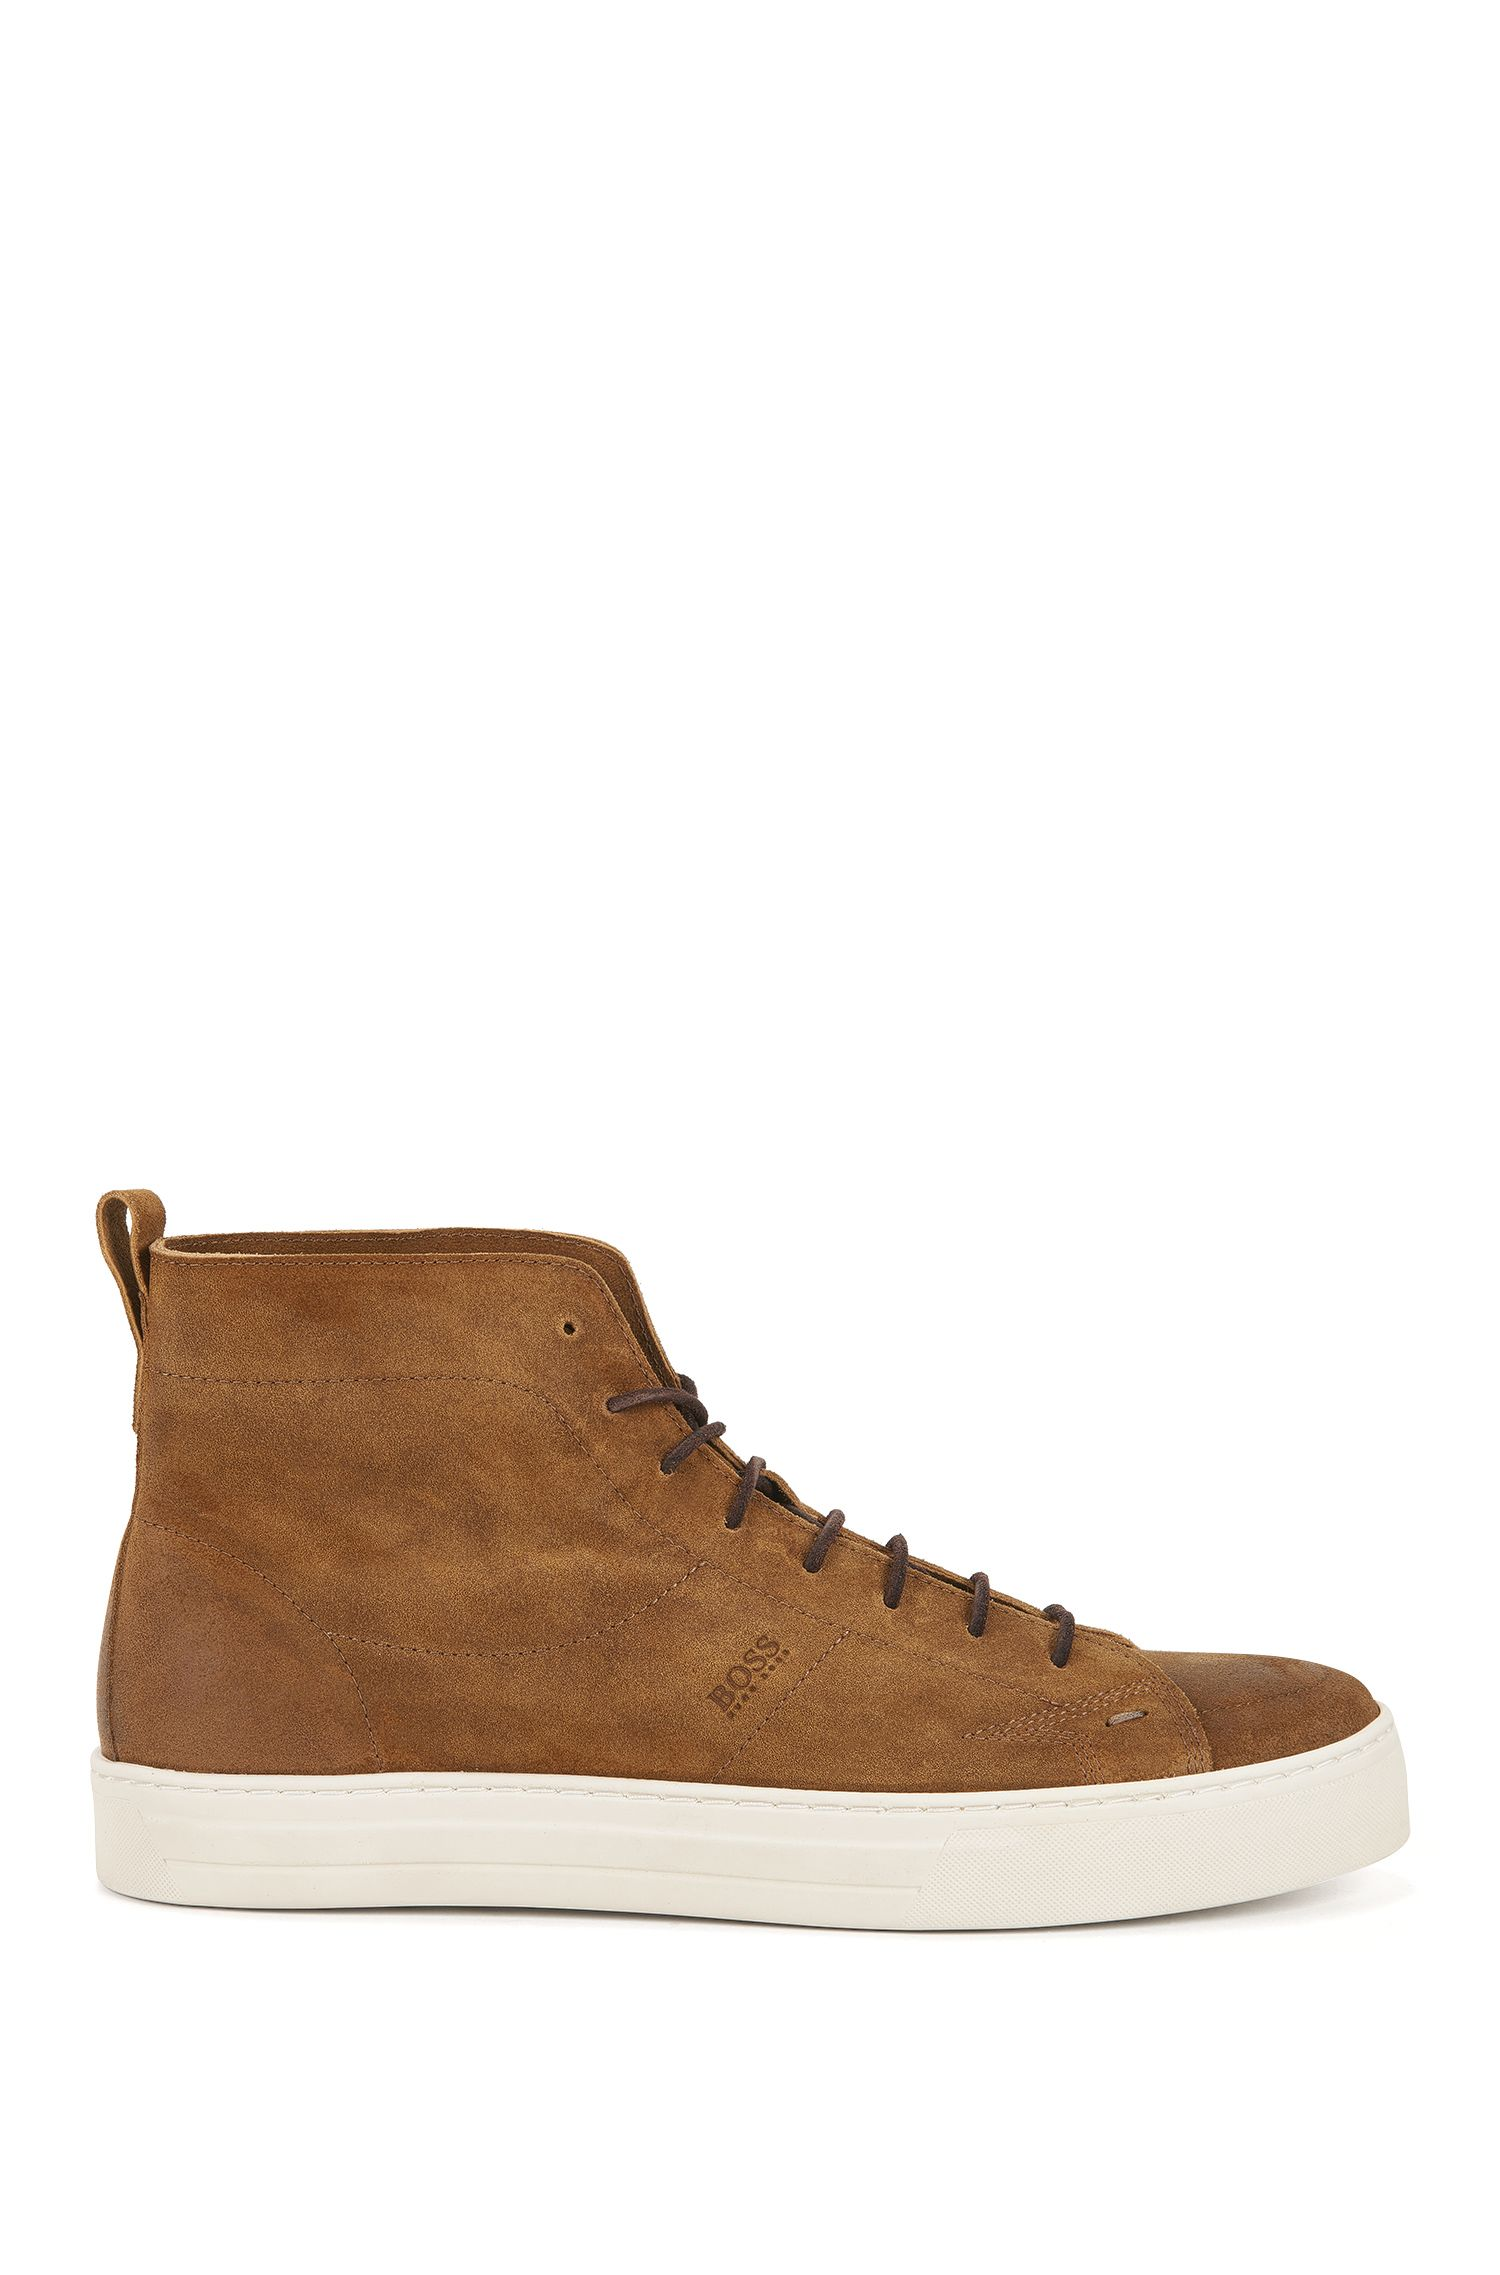 Laced half boots in soft suede